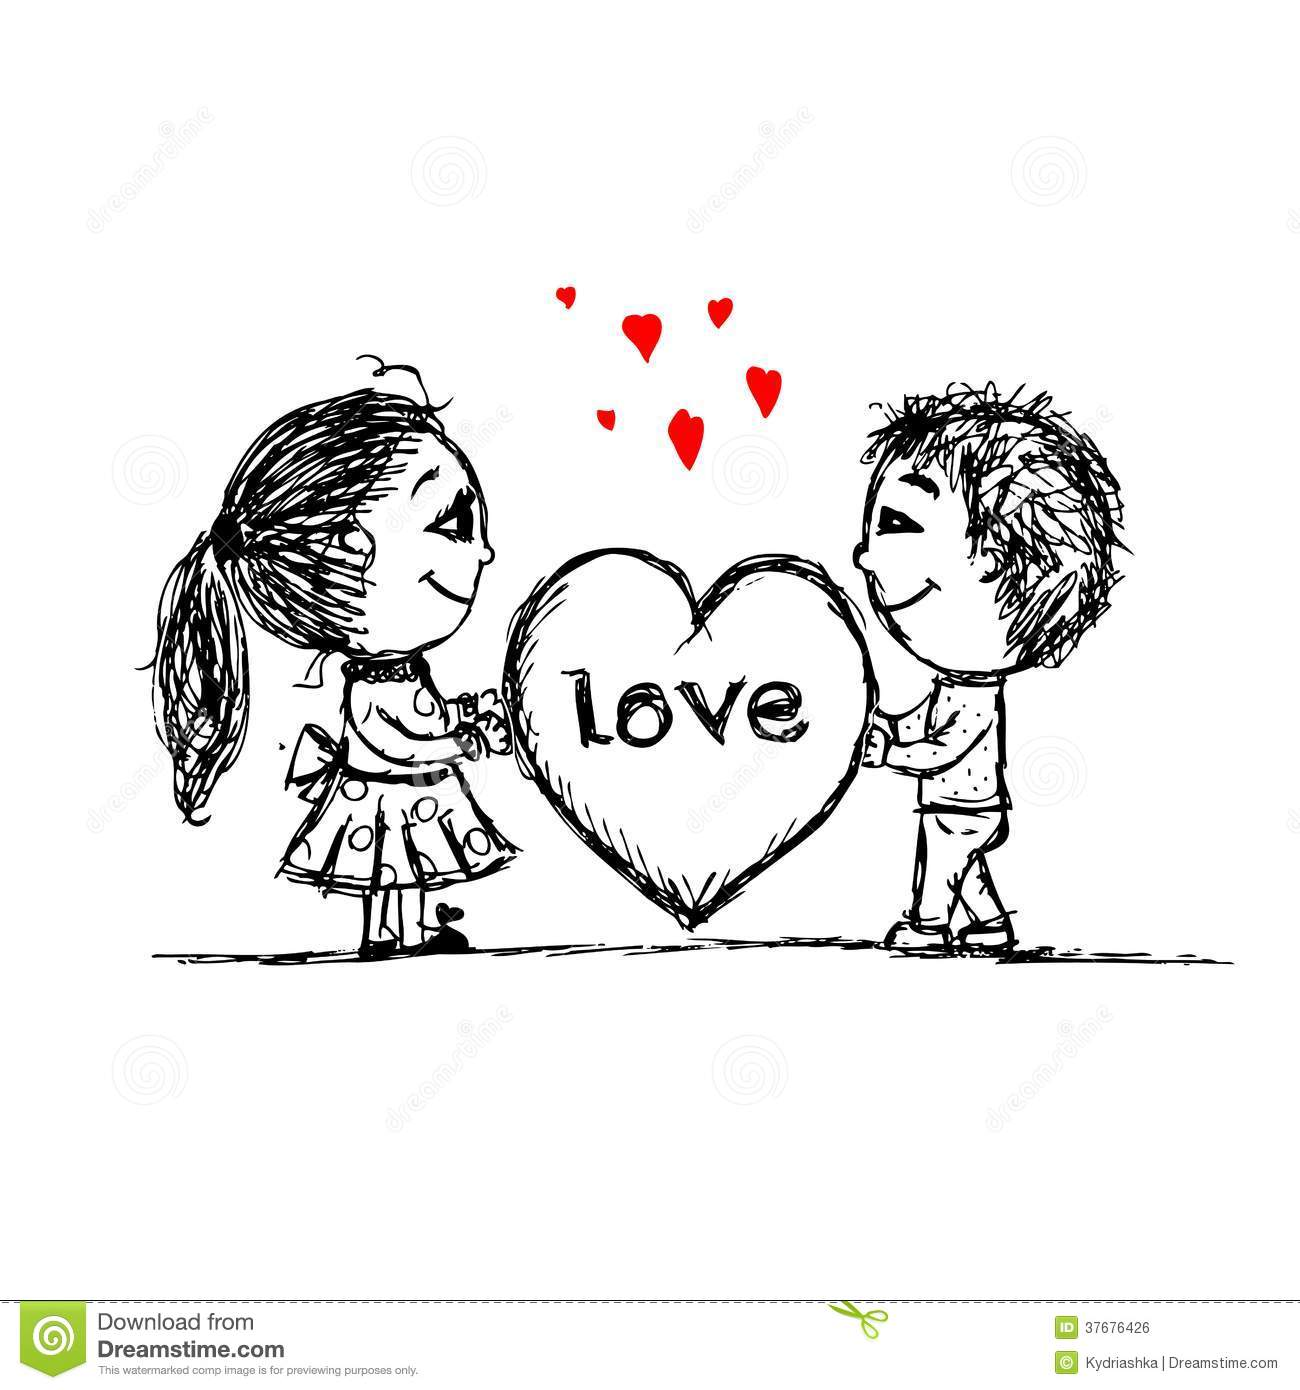 couple In Love Together, Valentine Sketch For Your Stock Vector - Image: 37676426